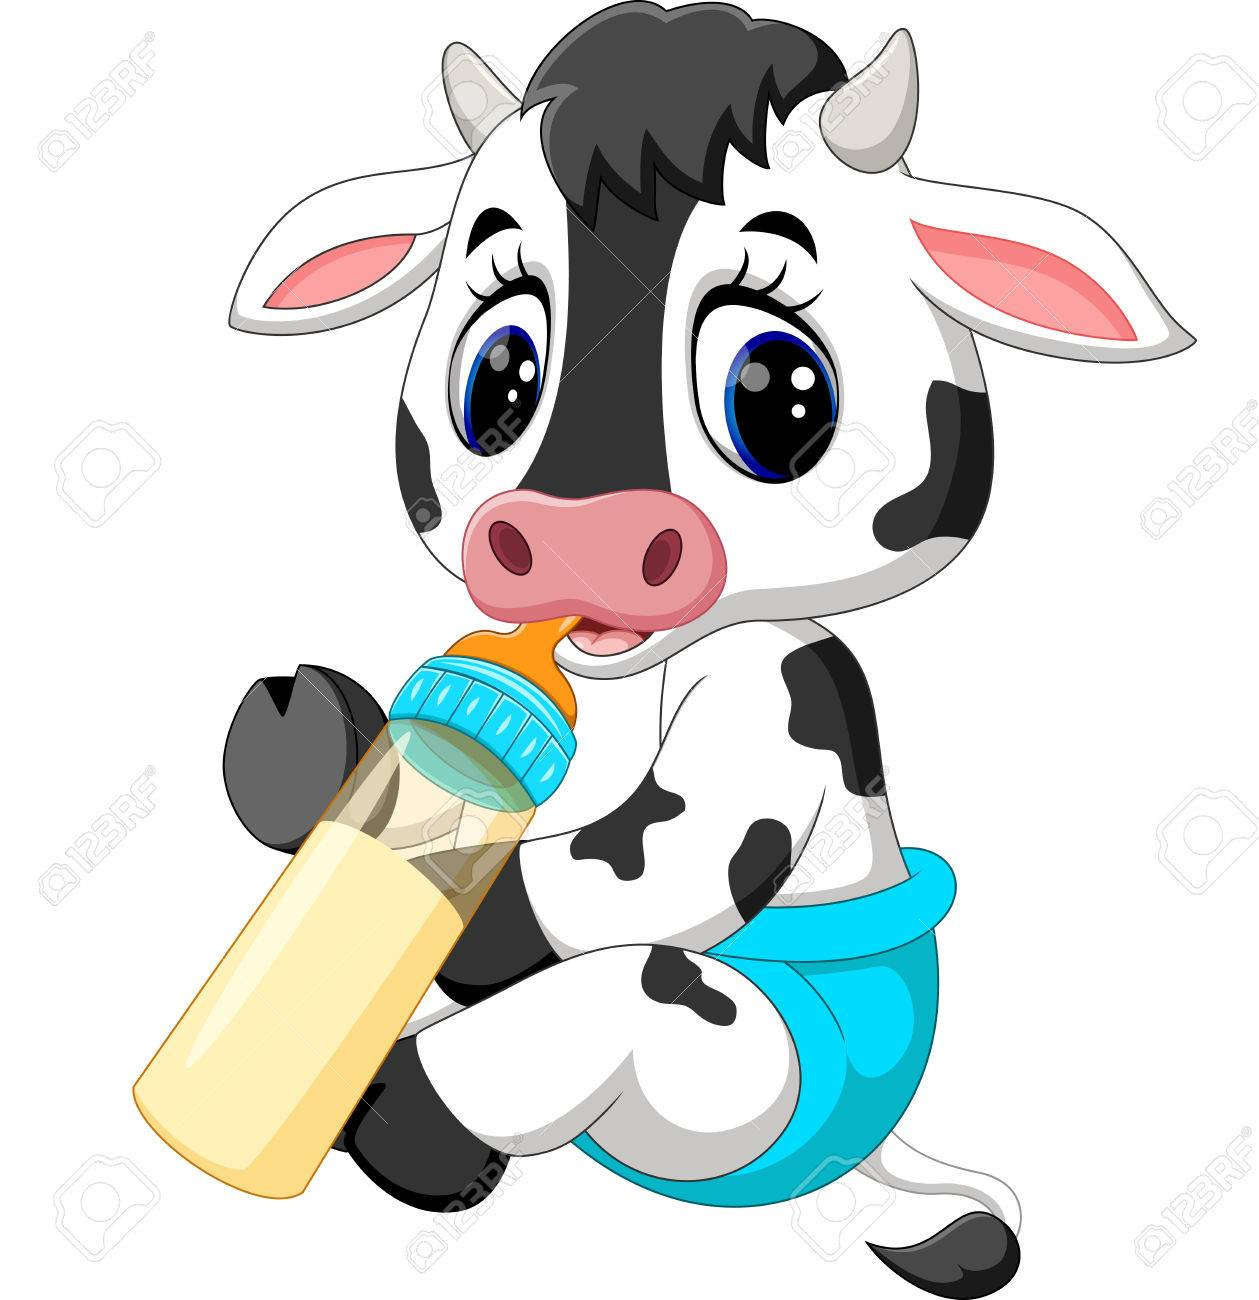 Cute Baby Cow Cartoon Stock Photo Picture And Royalty Free Image